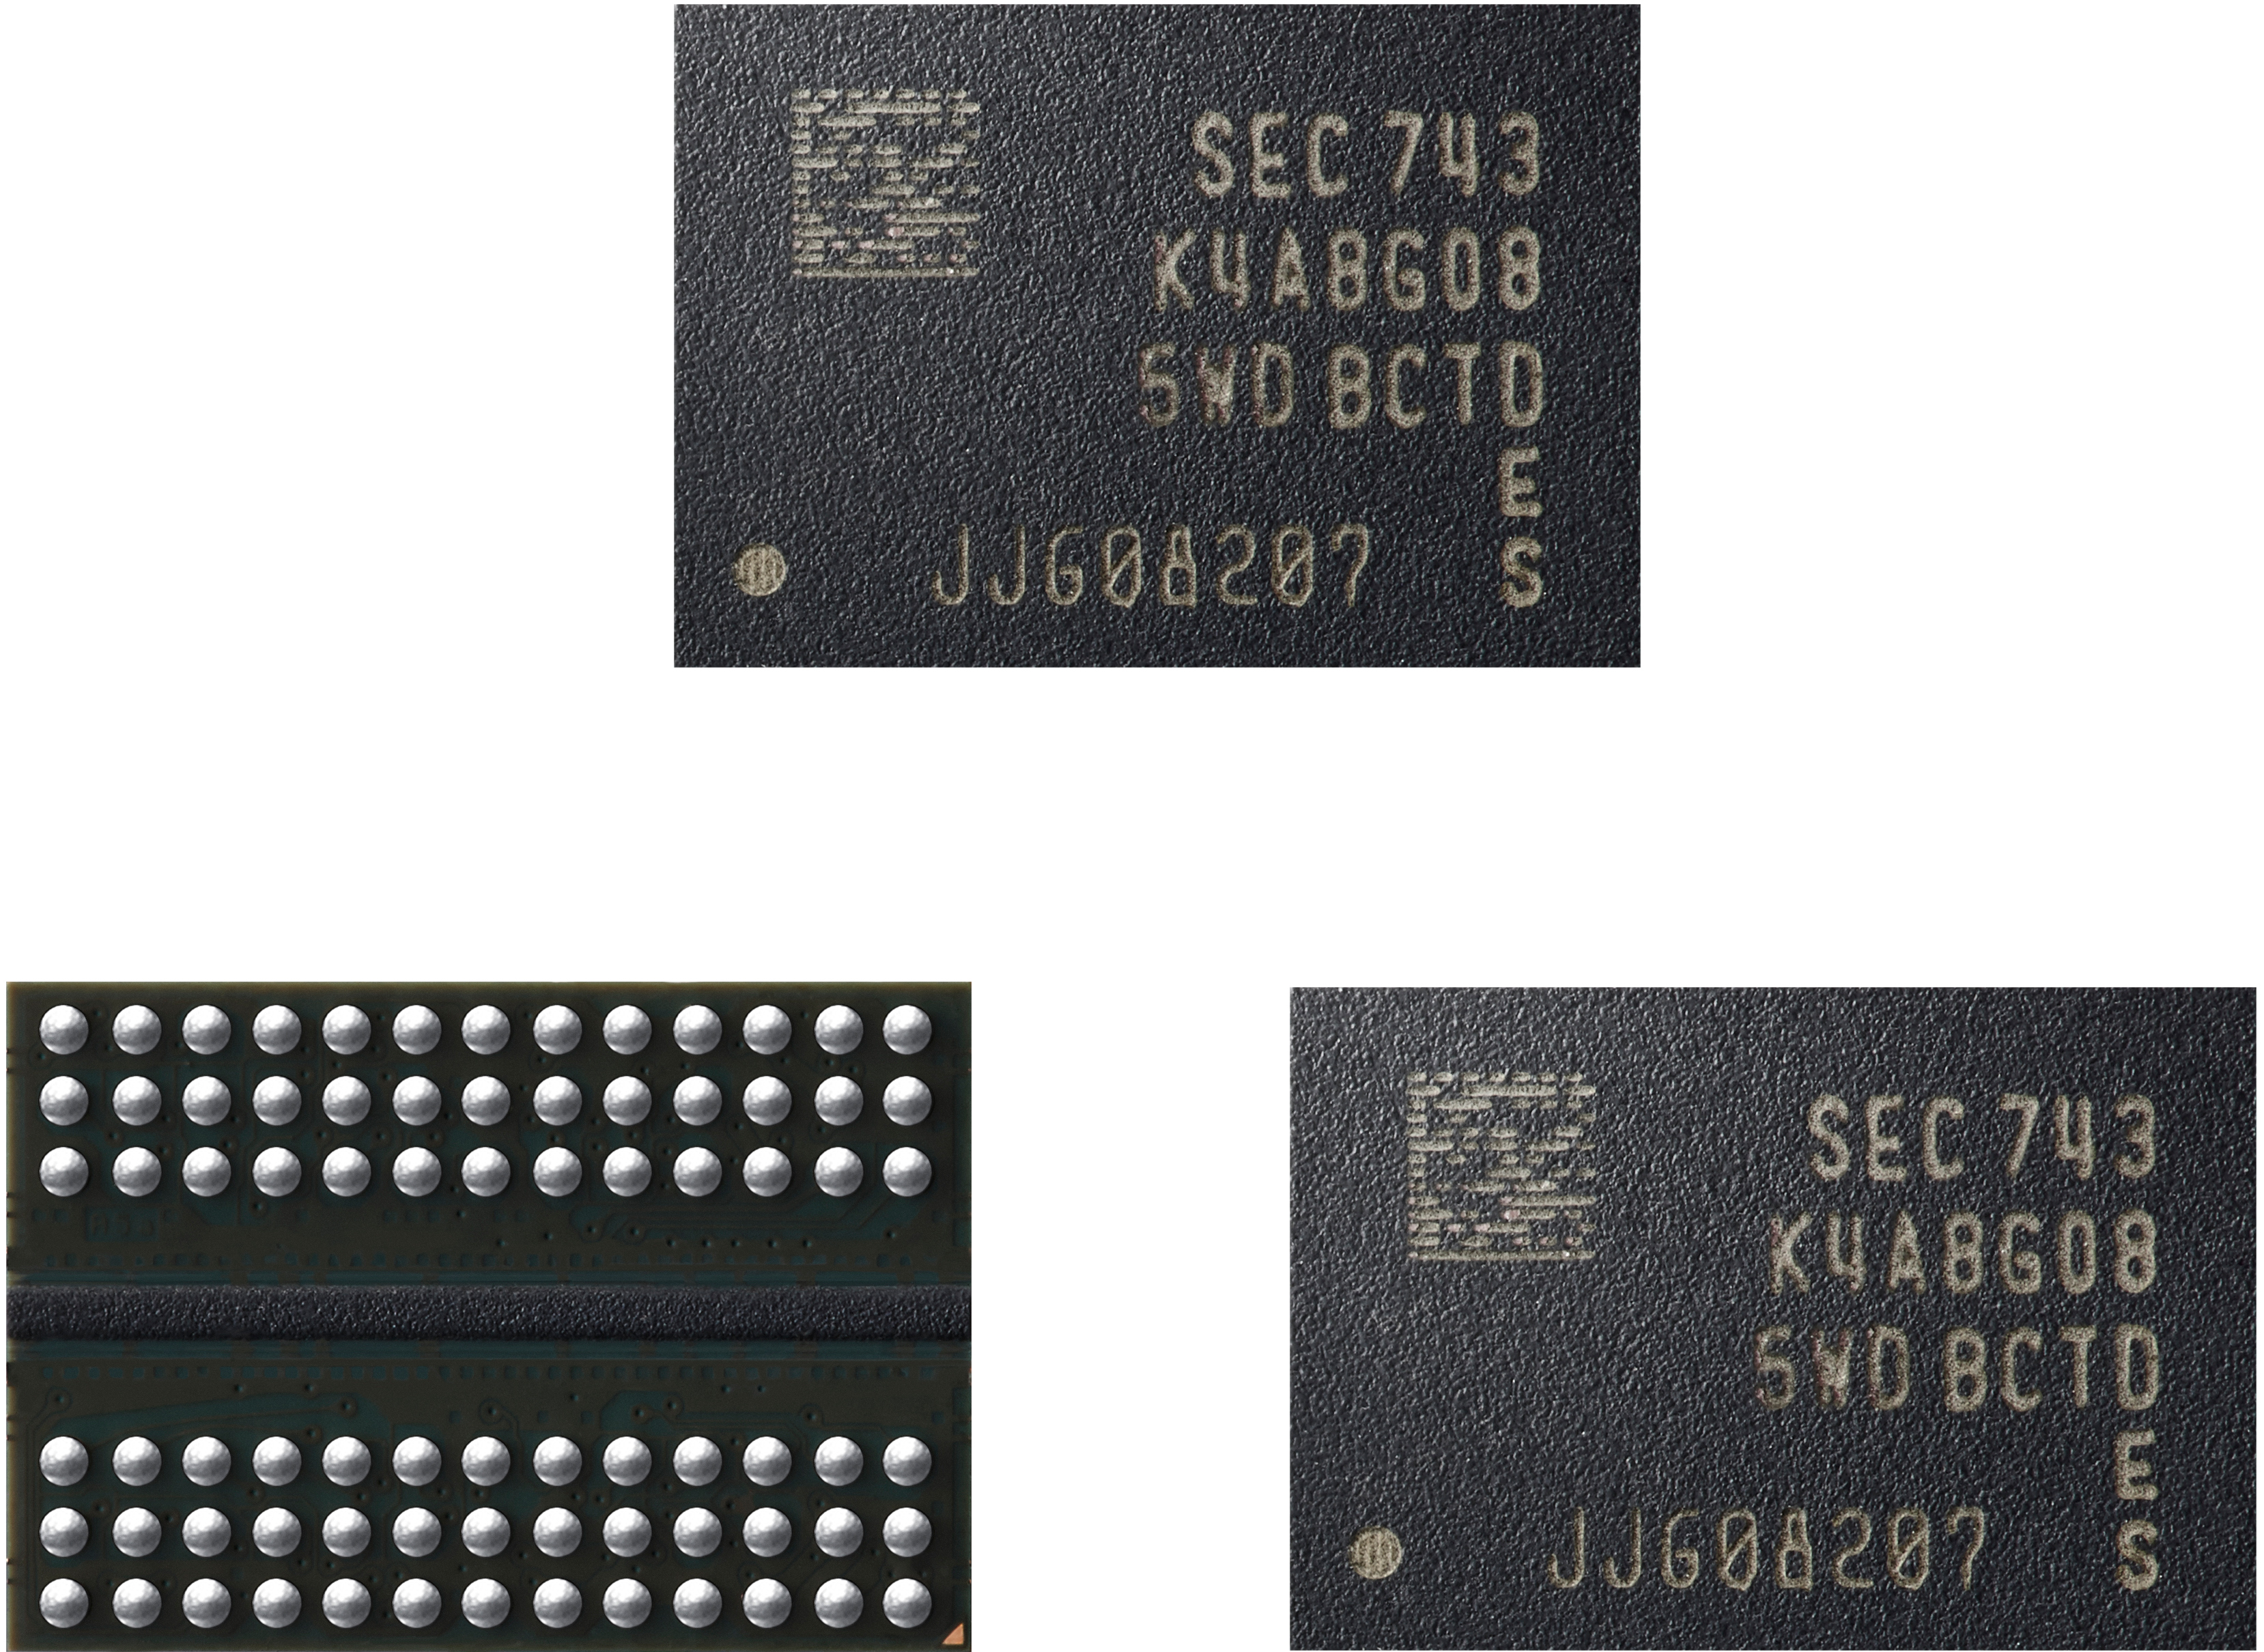 Samsung Electronics Announces Mass Production Of Its 10nm DRAM